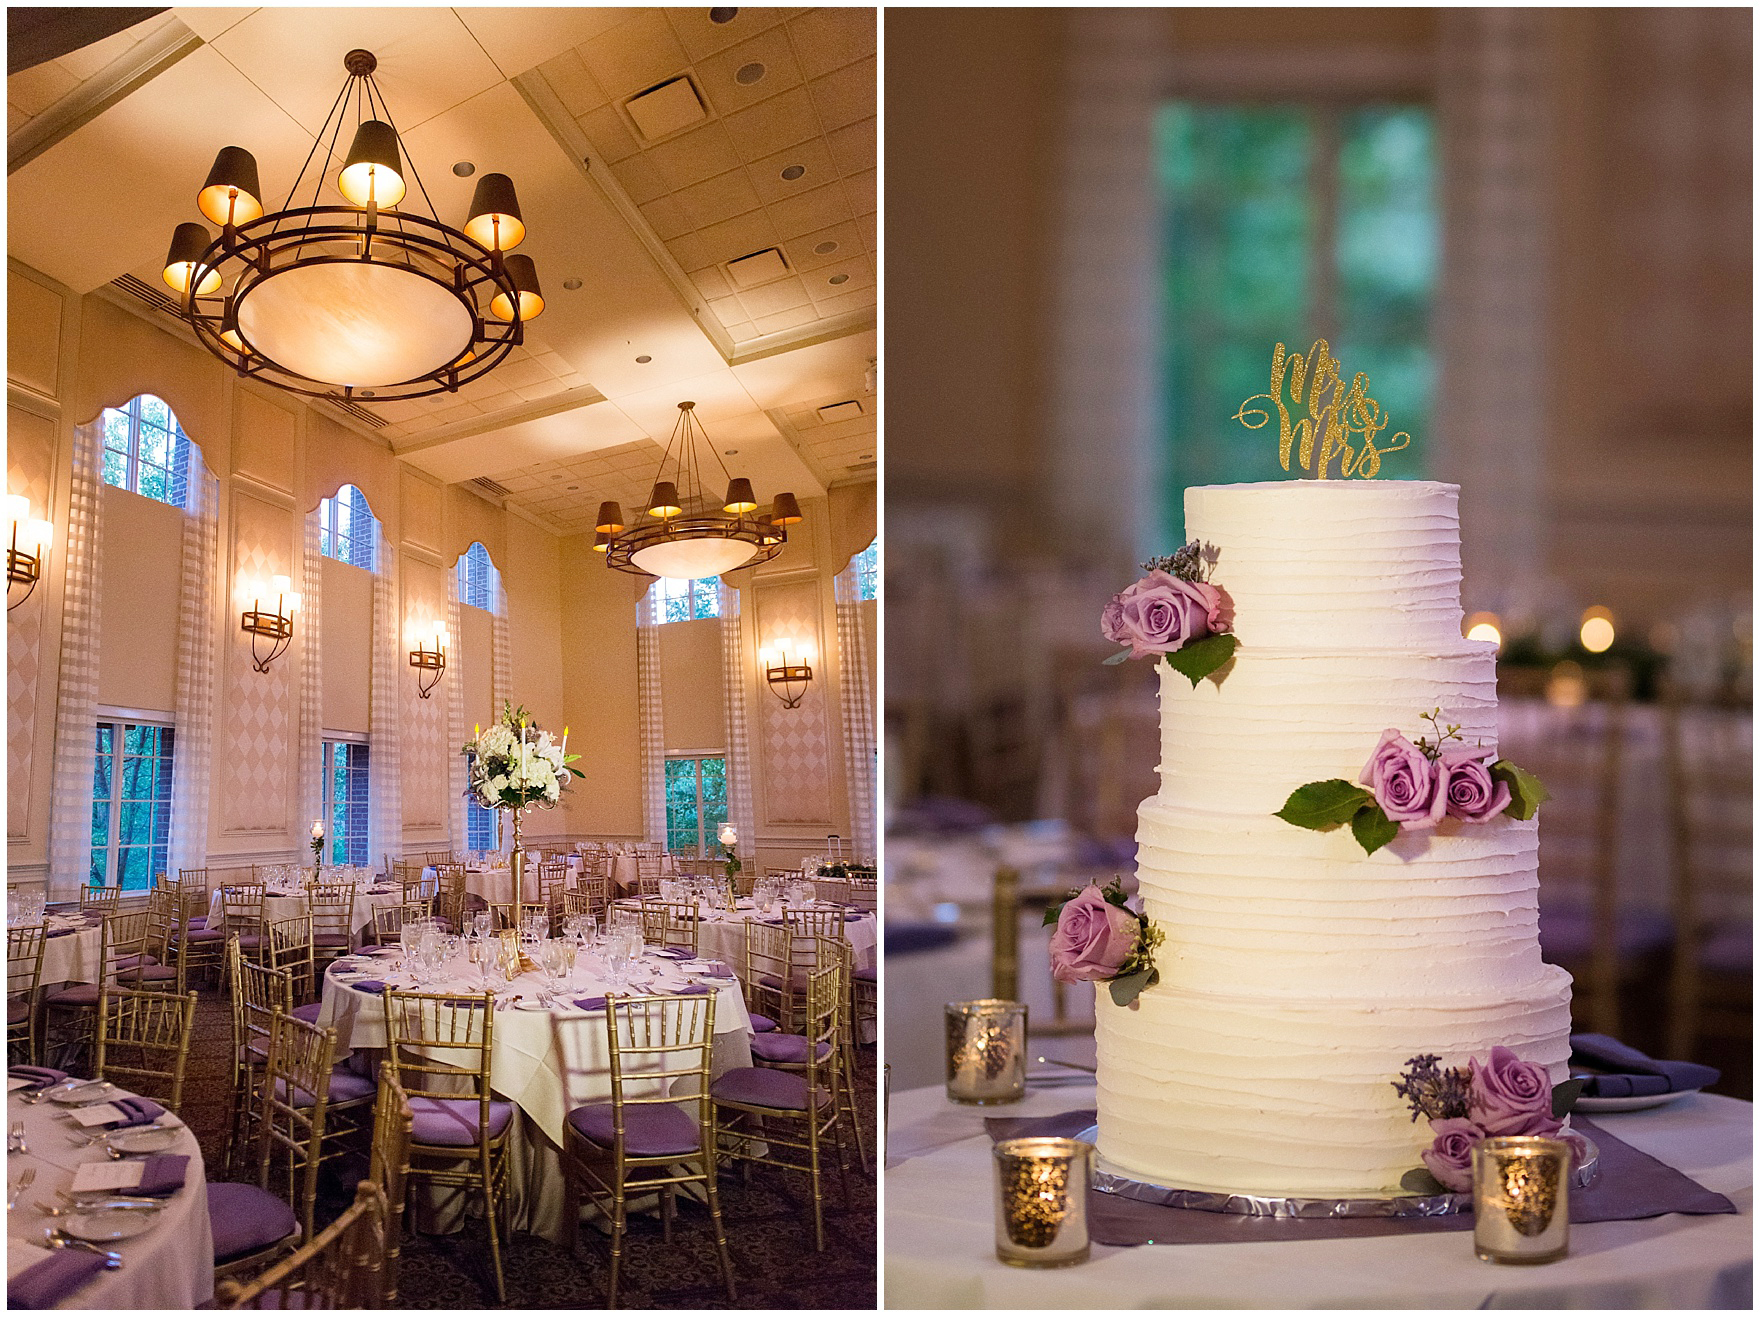 Details of the reception dinner decor for a Glen Club Glenview Illinois wedding.